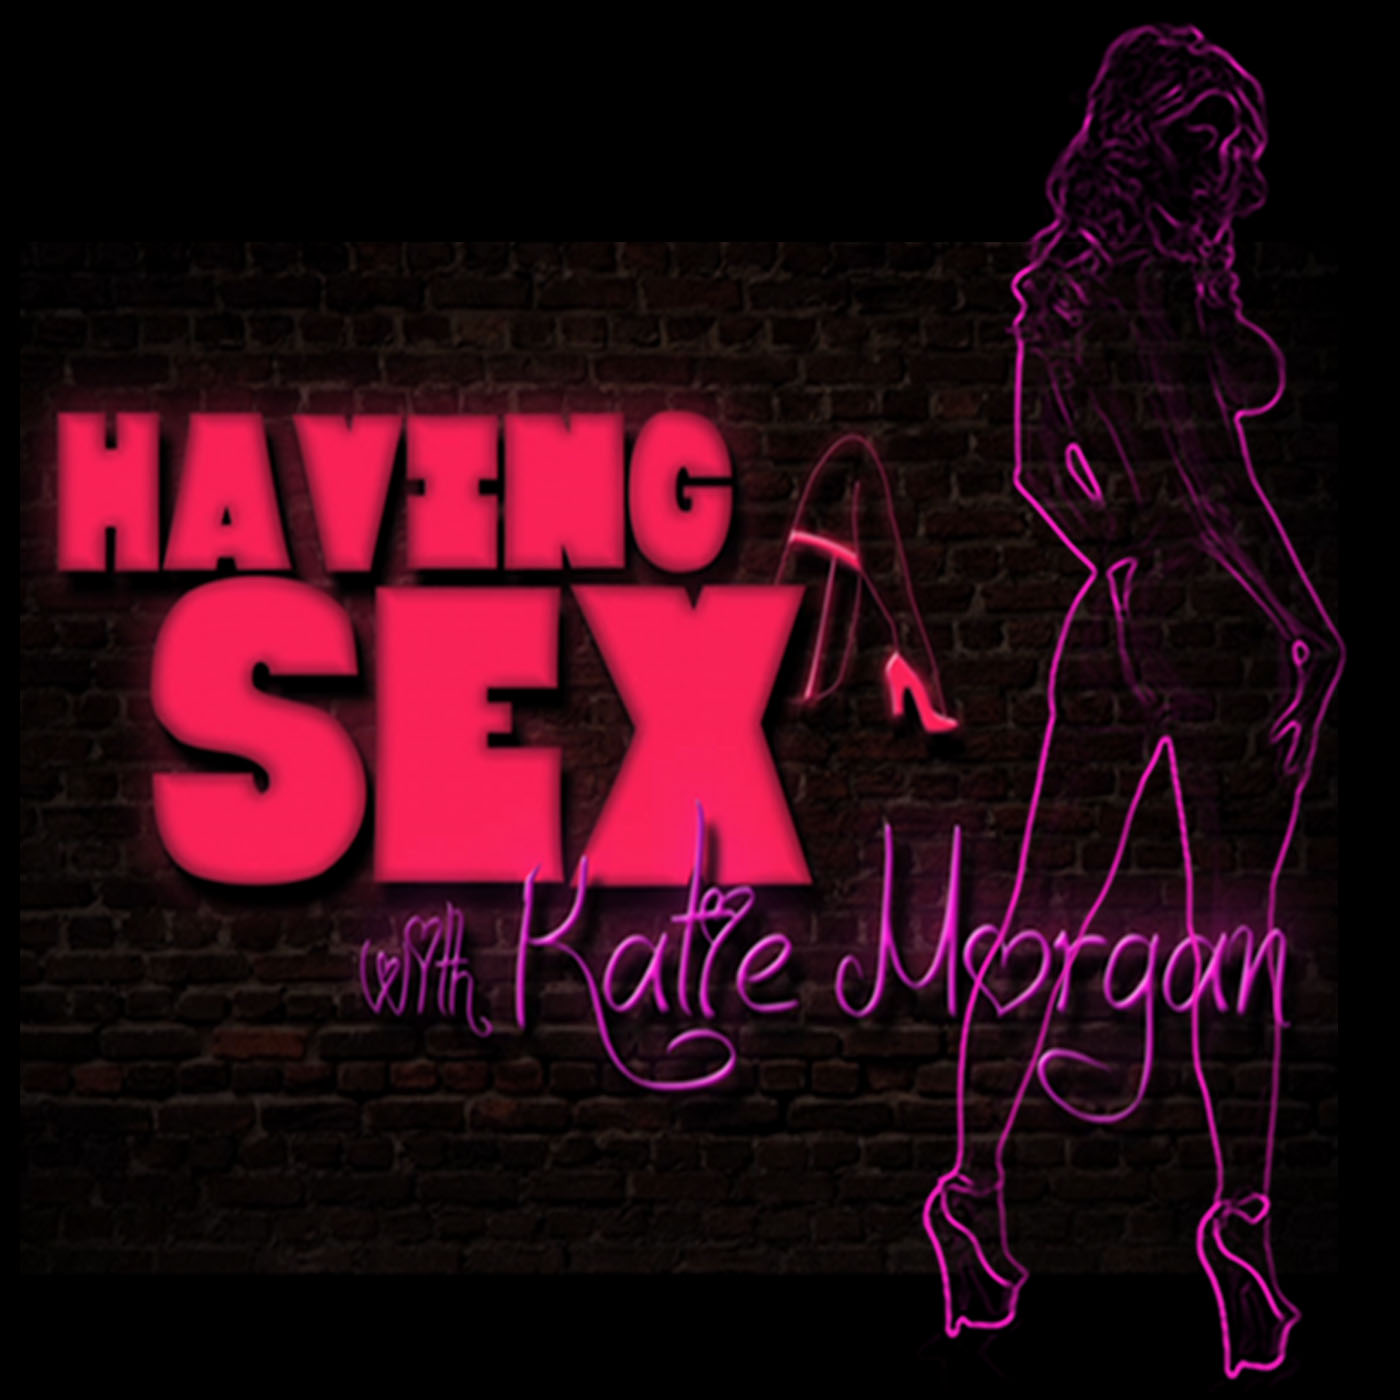 Having Sex, Katie Morgan